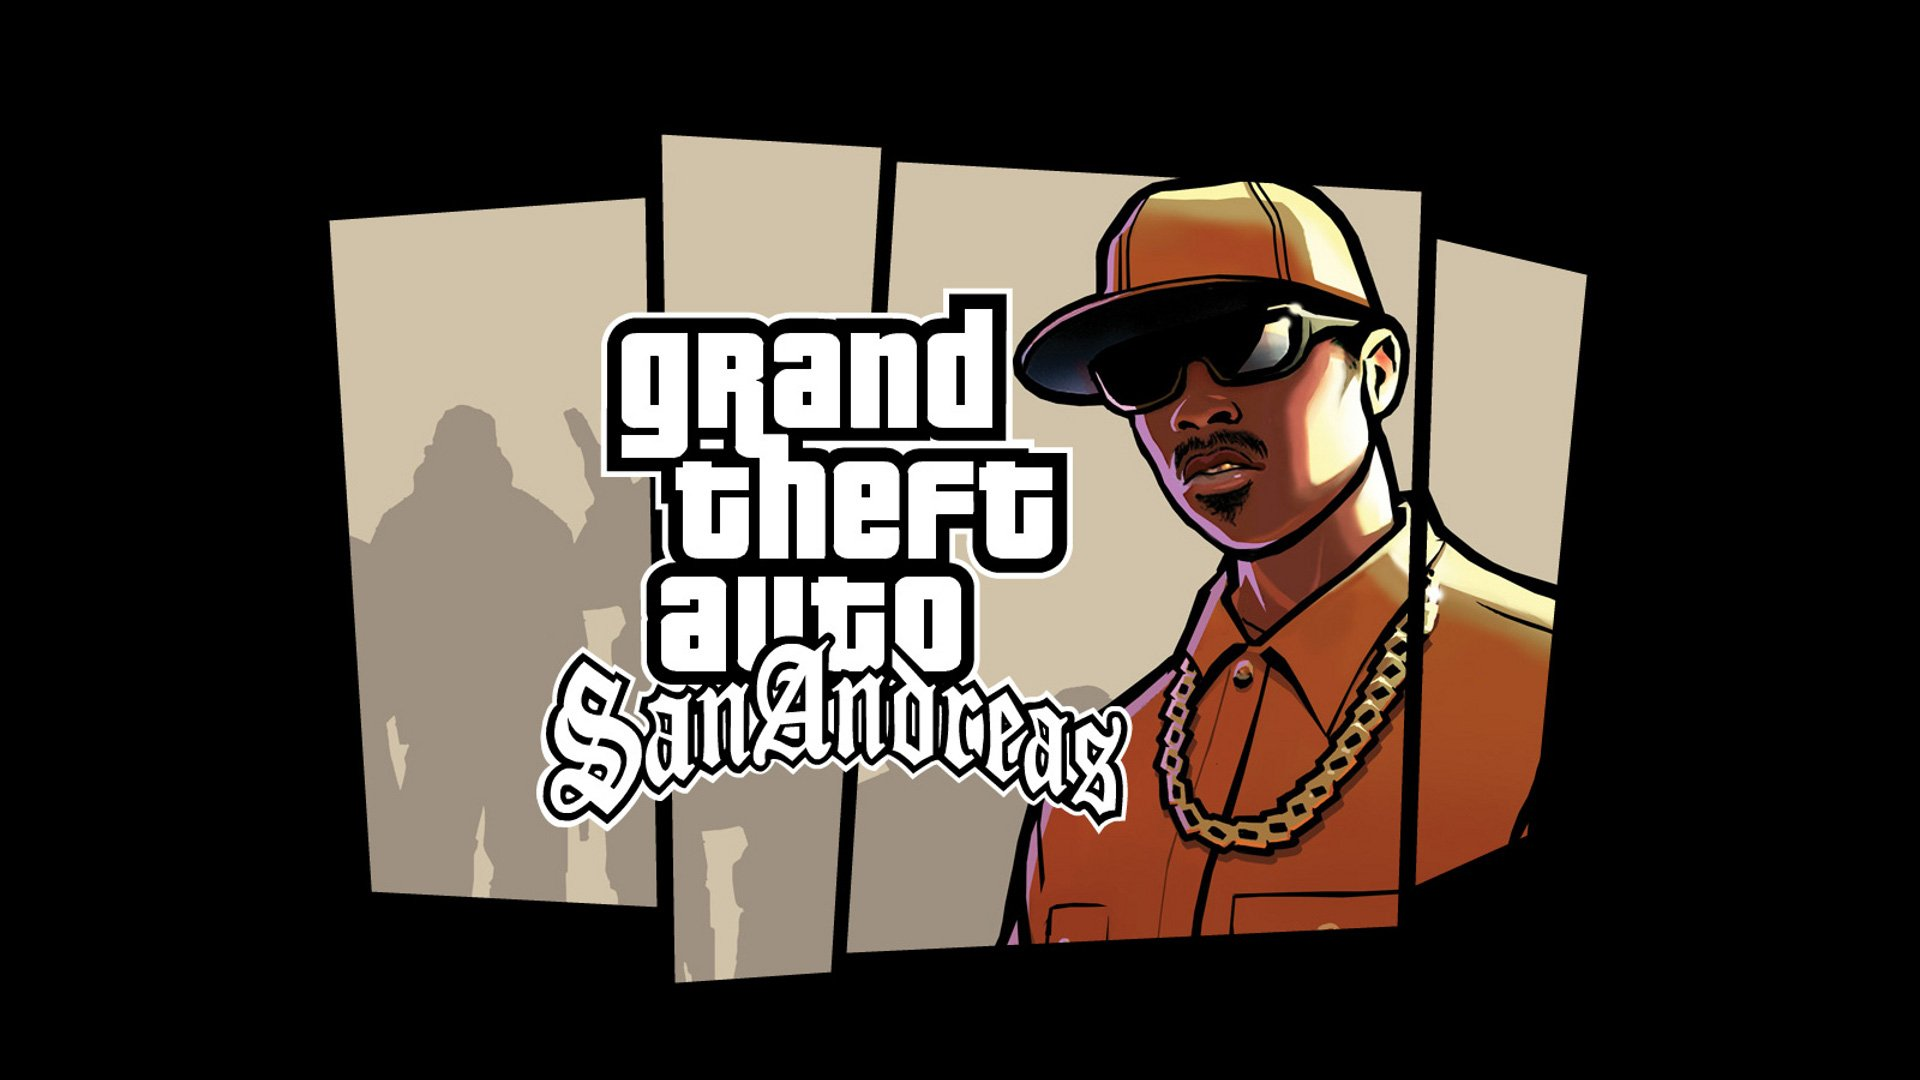 Grand Theft Auto San Andreas Hd Wallpaper Background Image